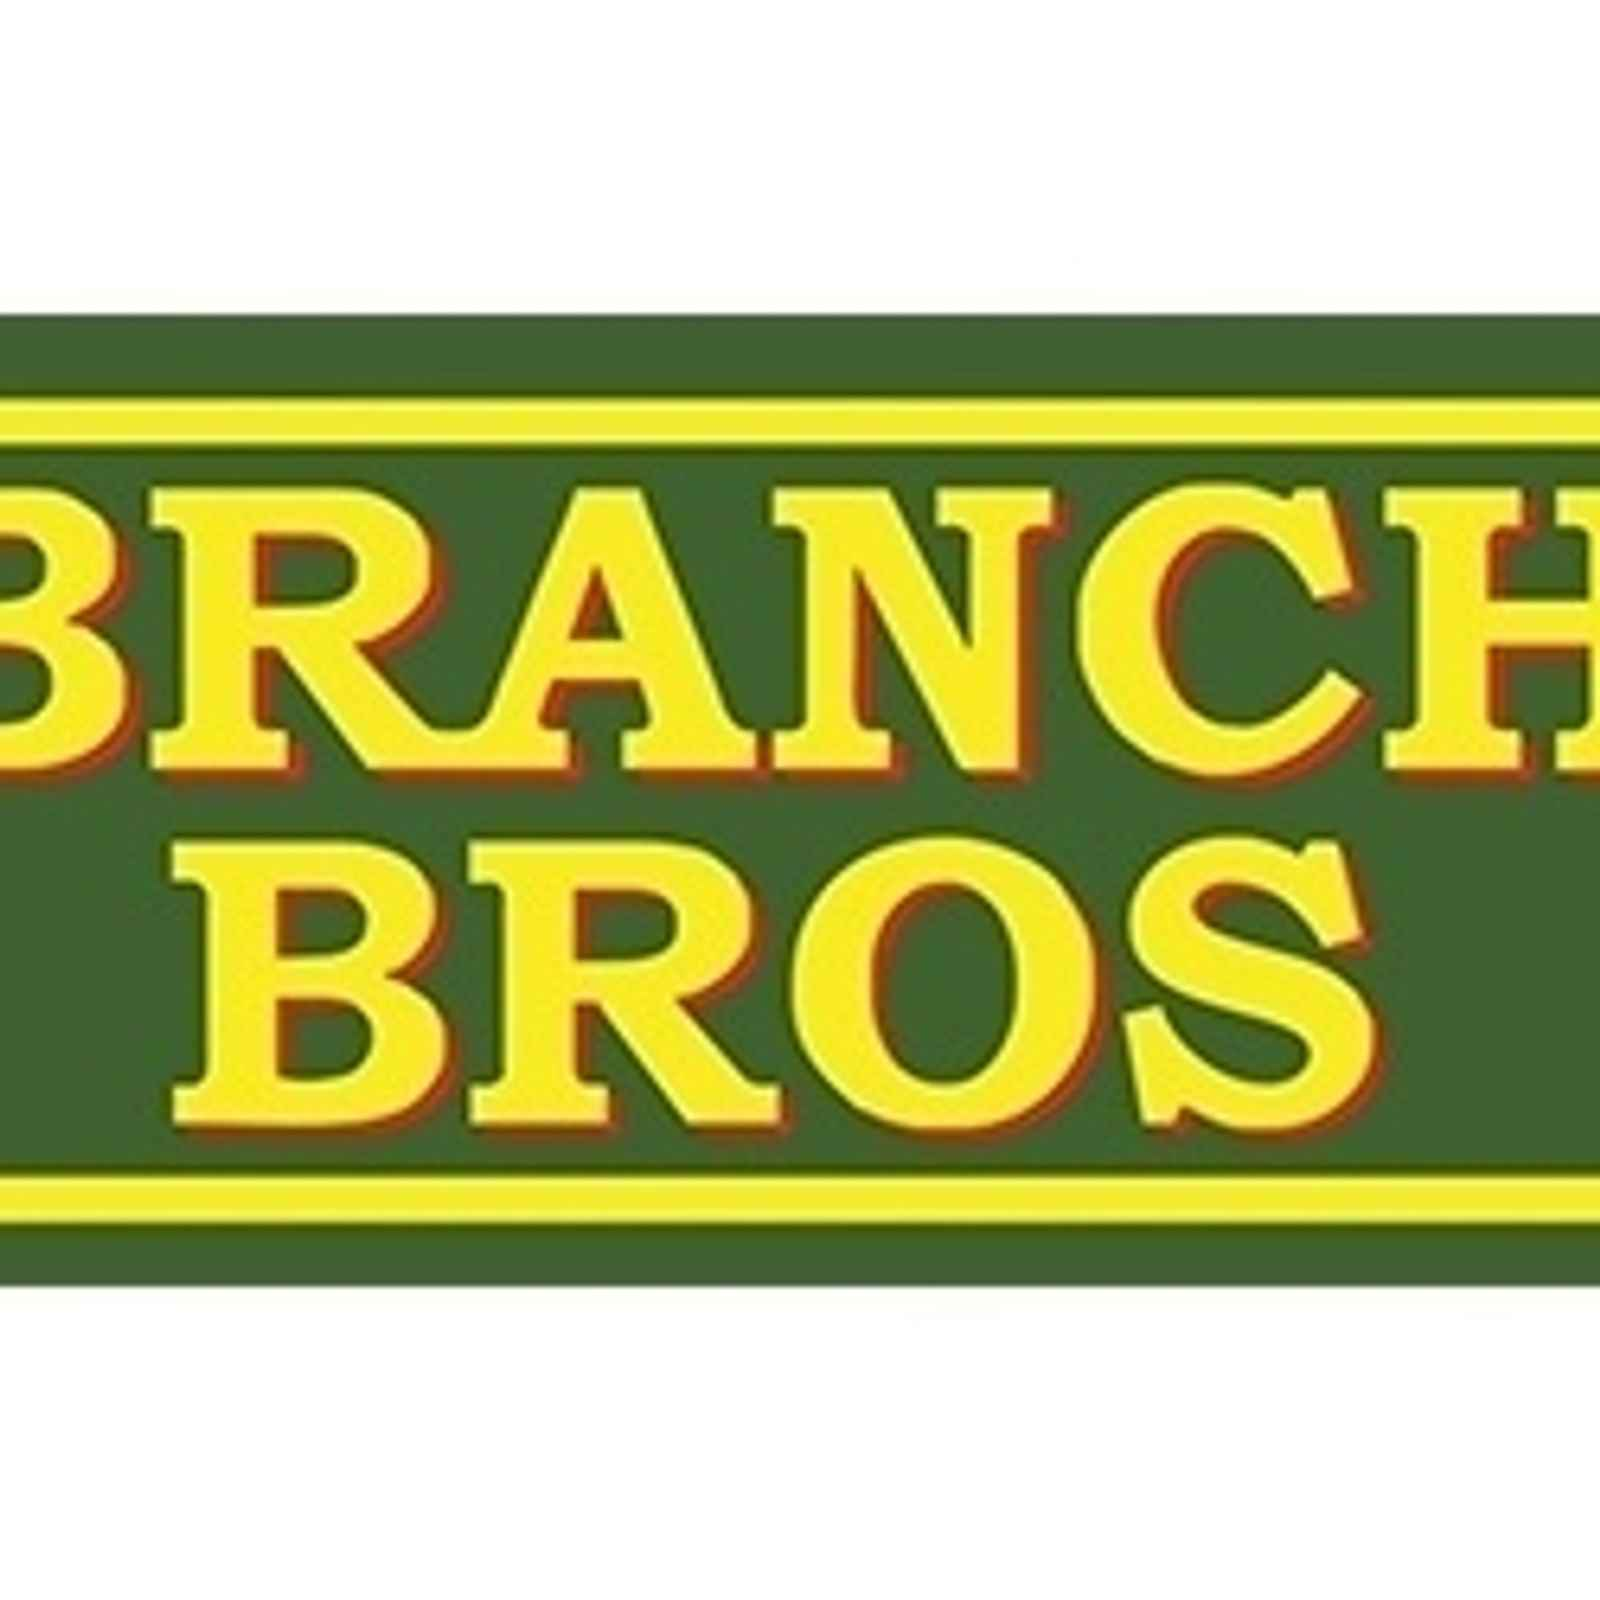 Branch Bros Renew Sponsorship Deal